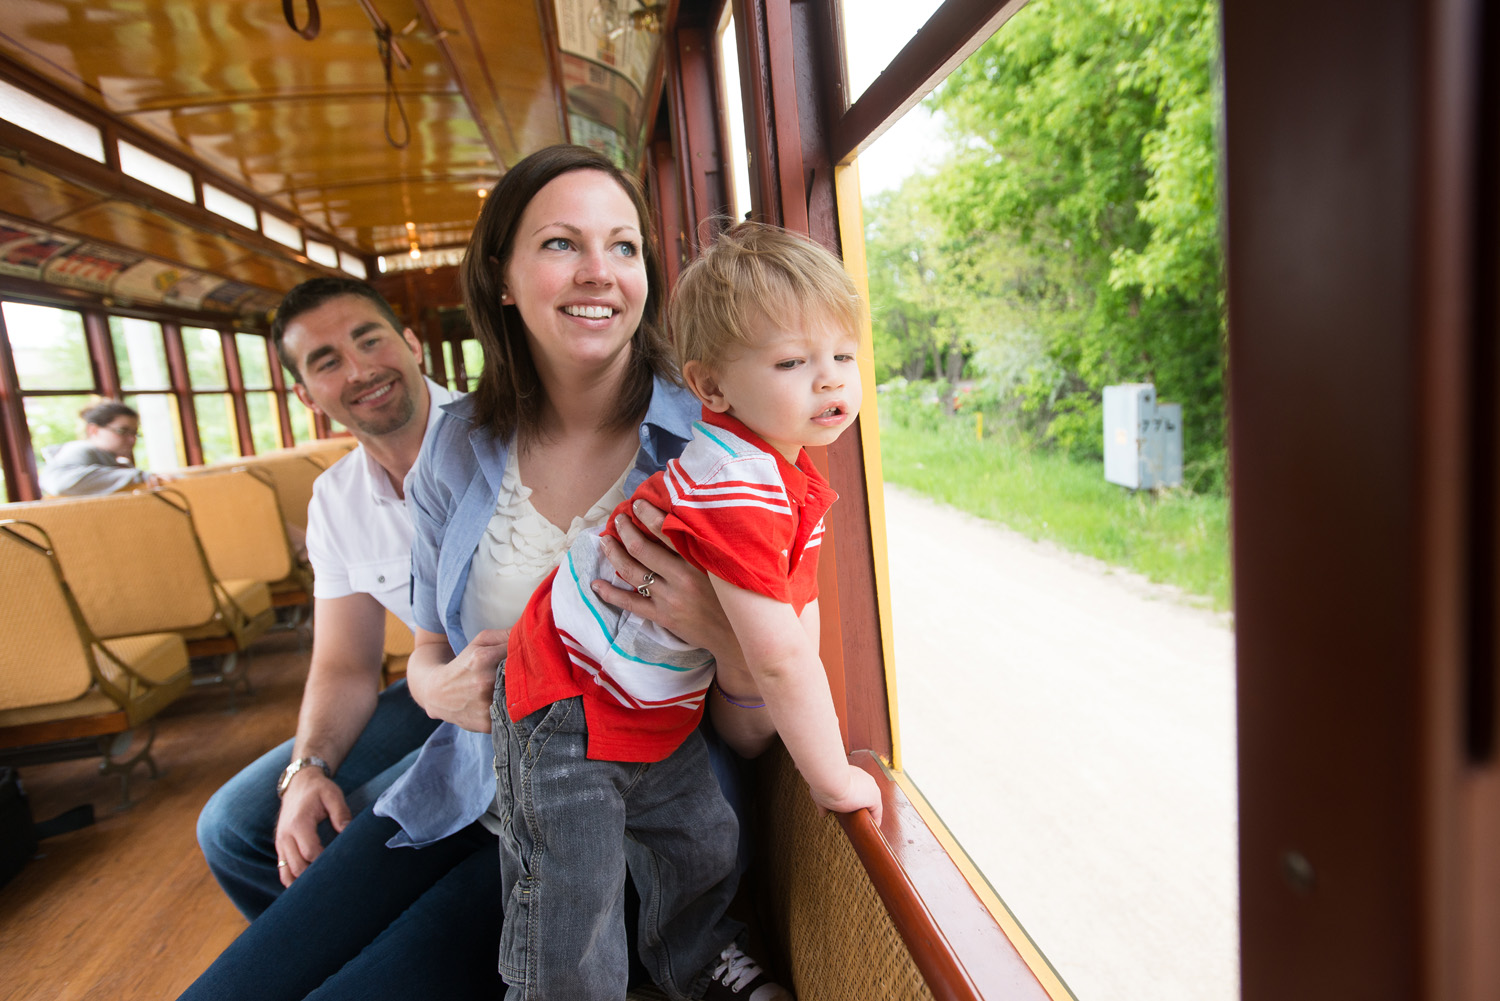 A family takes in the sights from the vantage point of the Como-Harriet Streetcar line in Southwest Minneapolis.